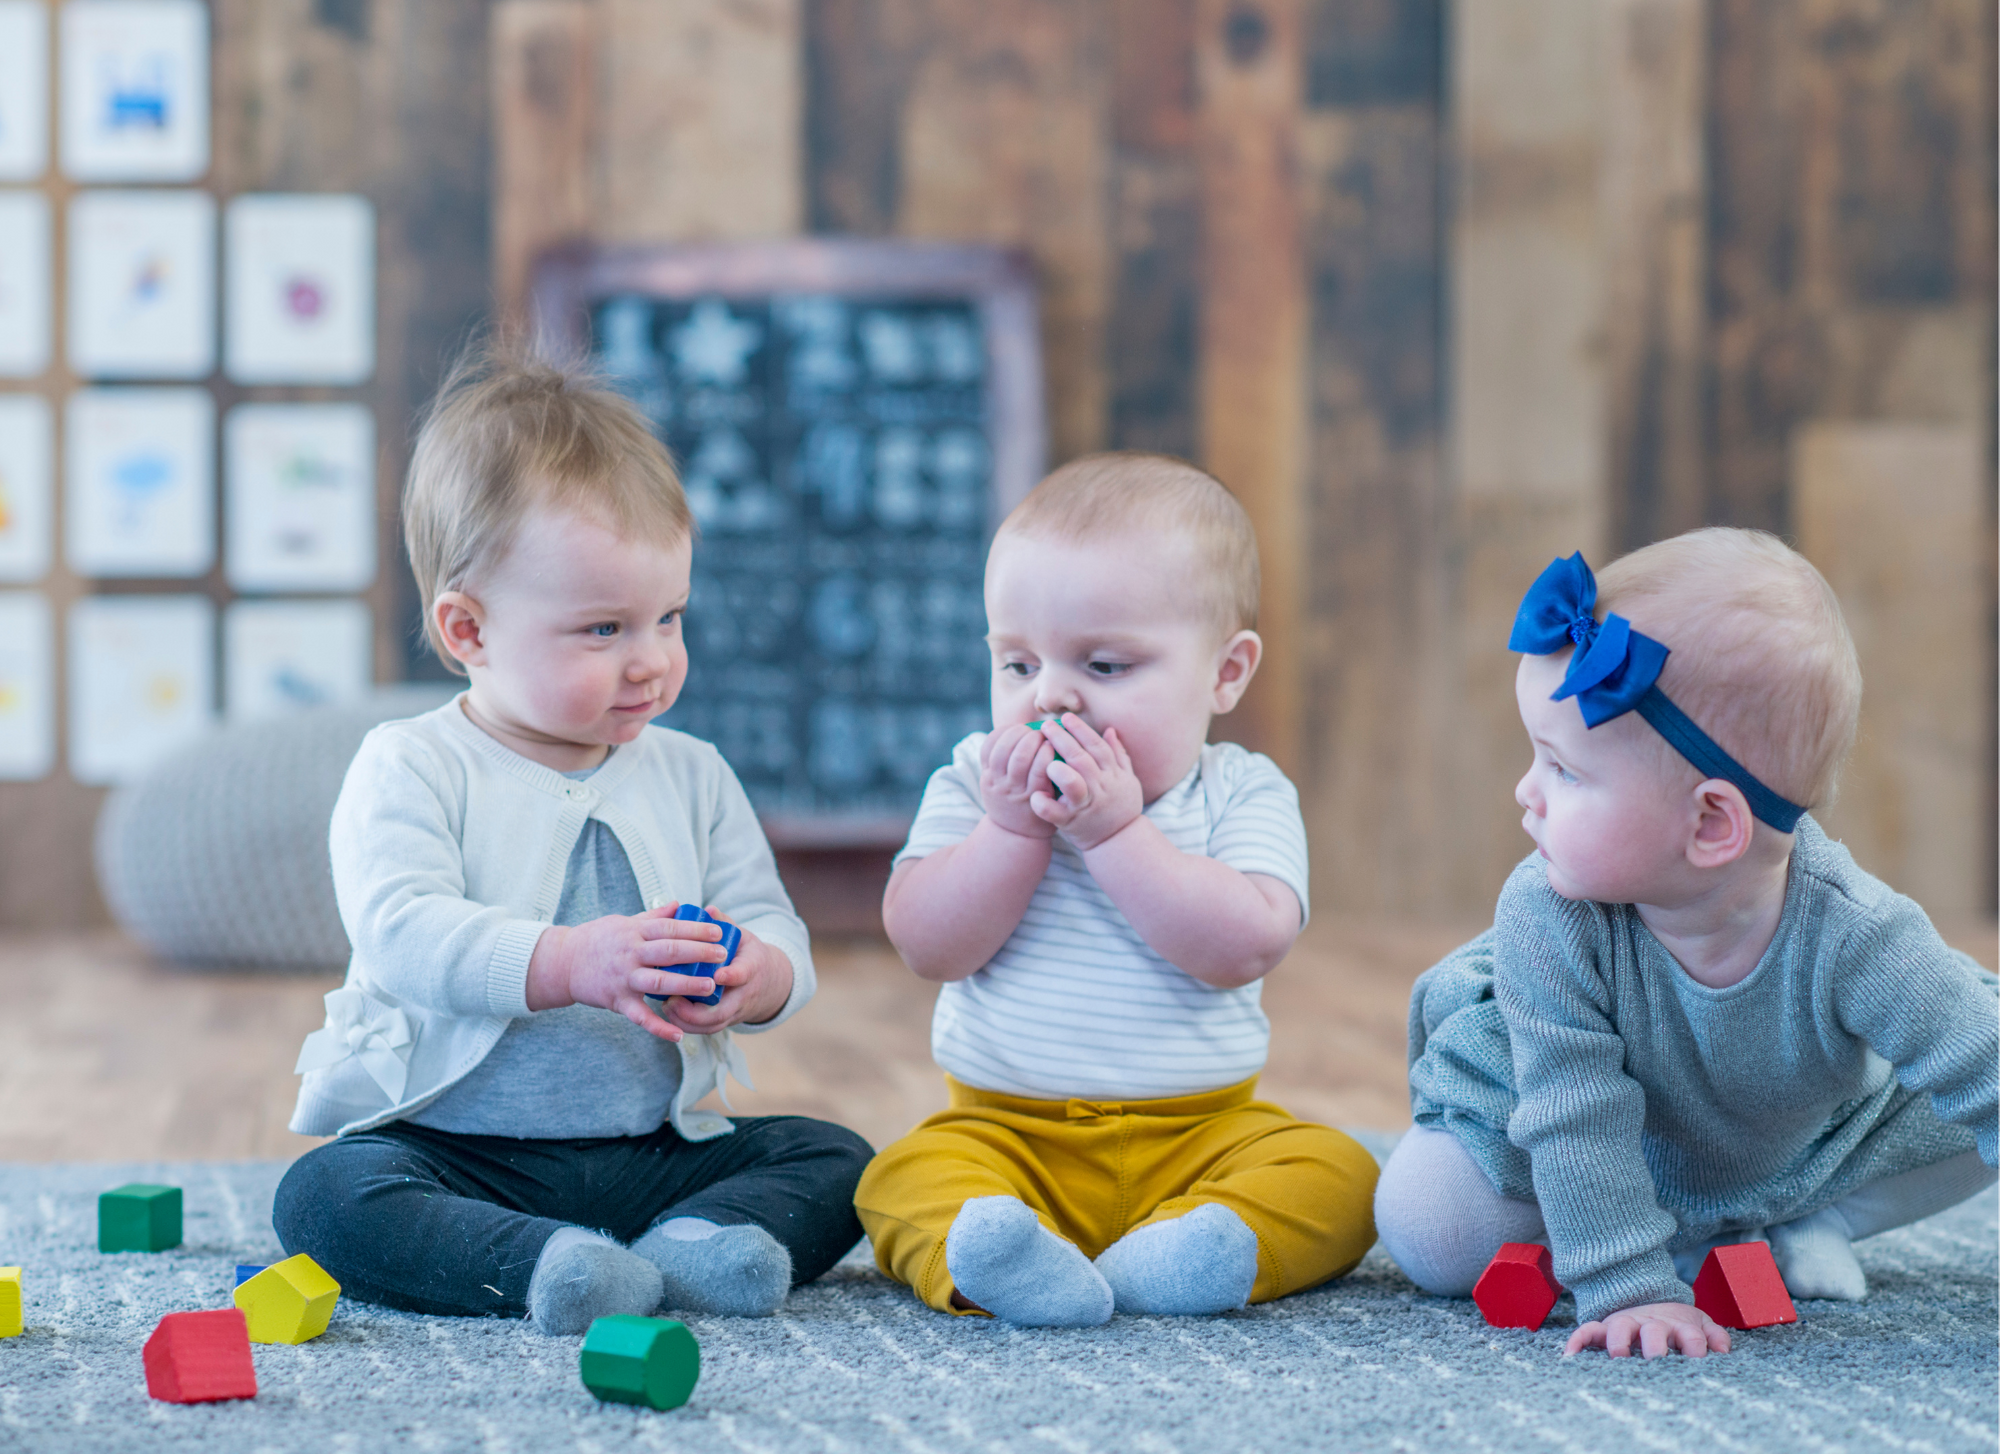 4 Ways to Socialize Toddlers During Quarantine